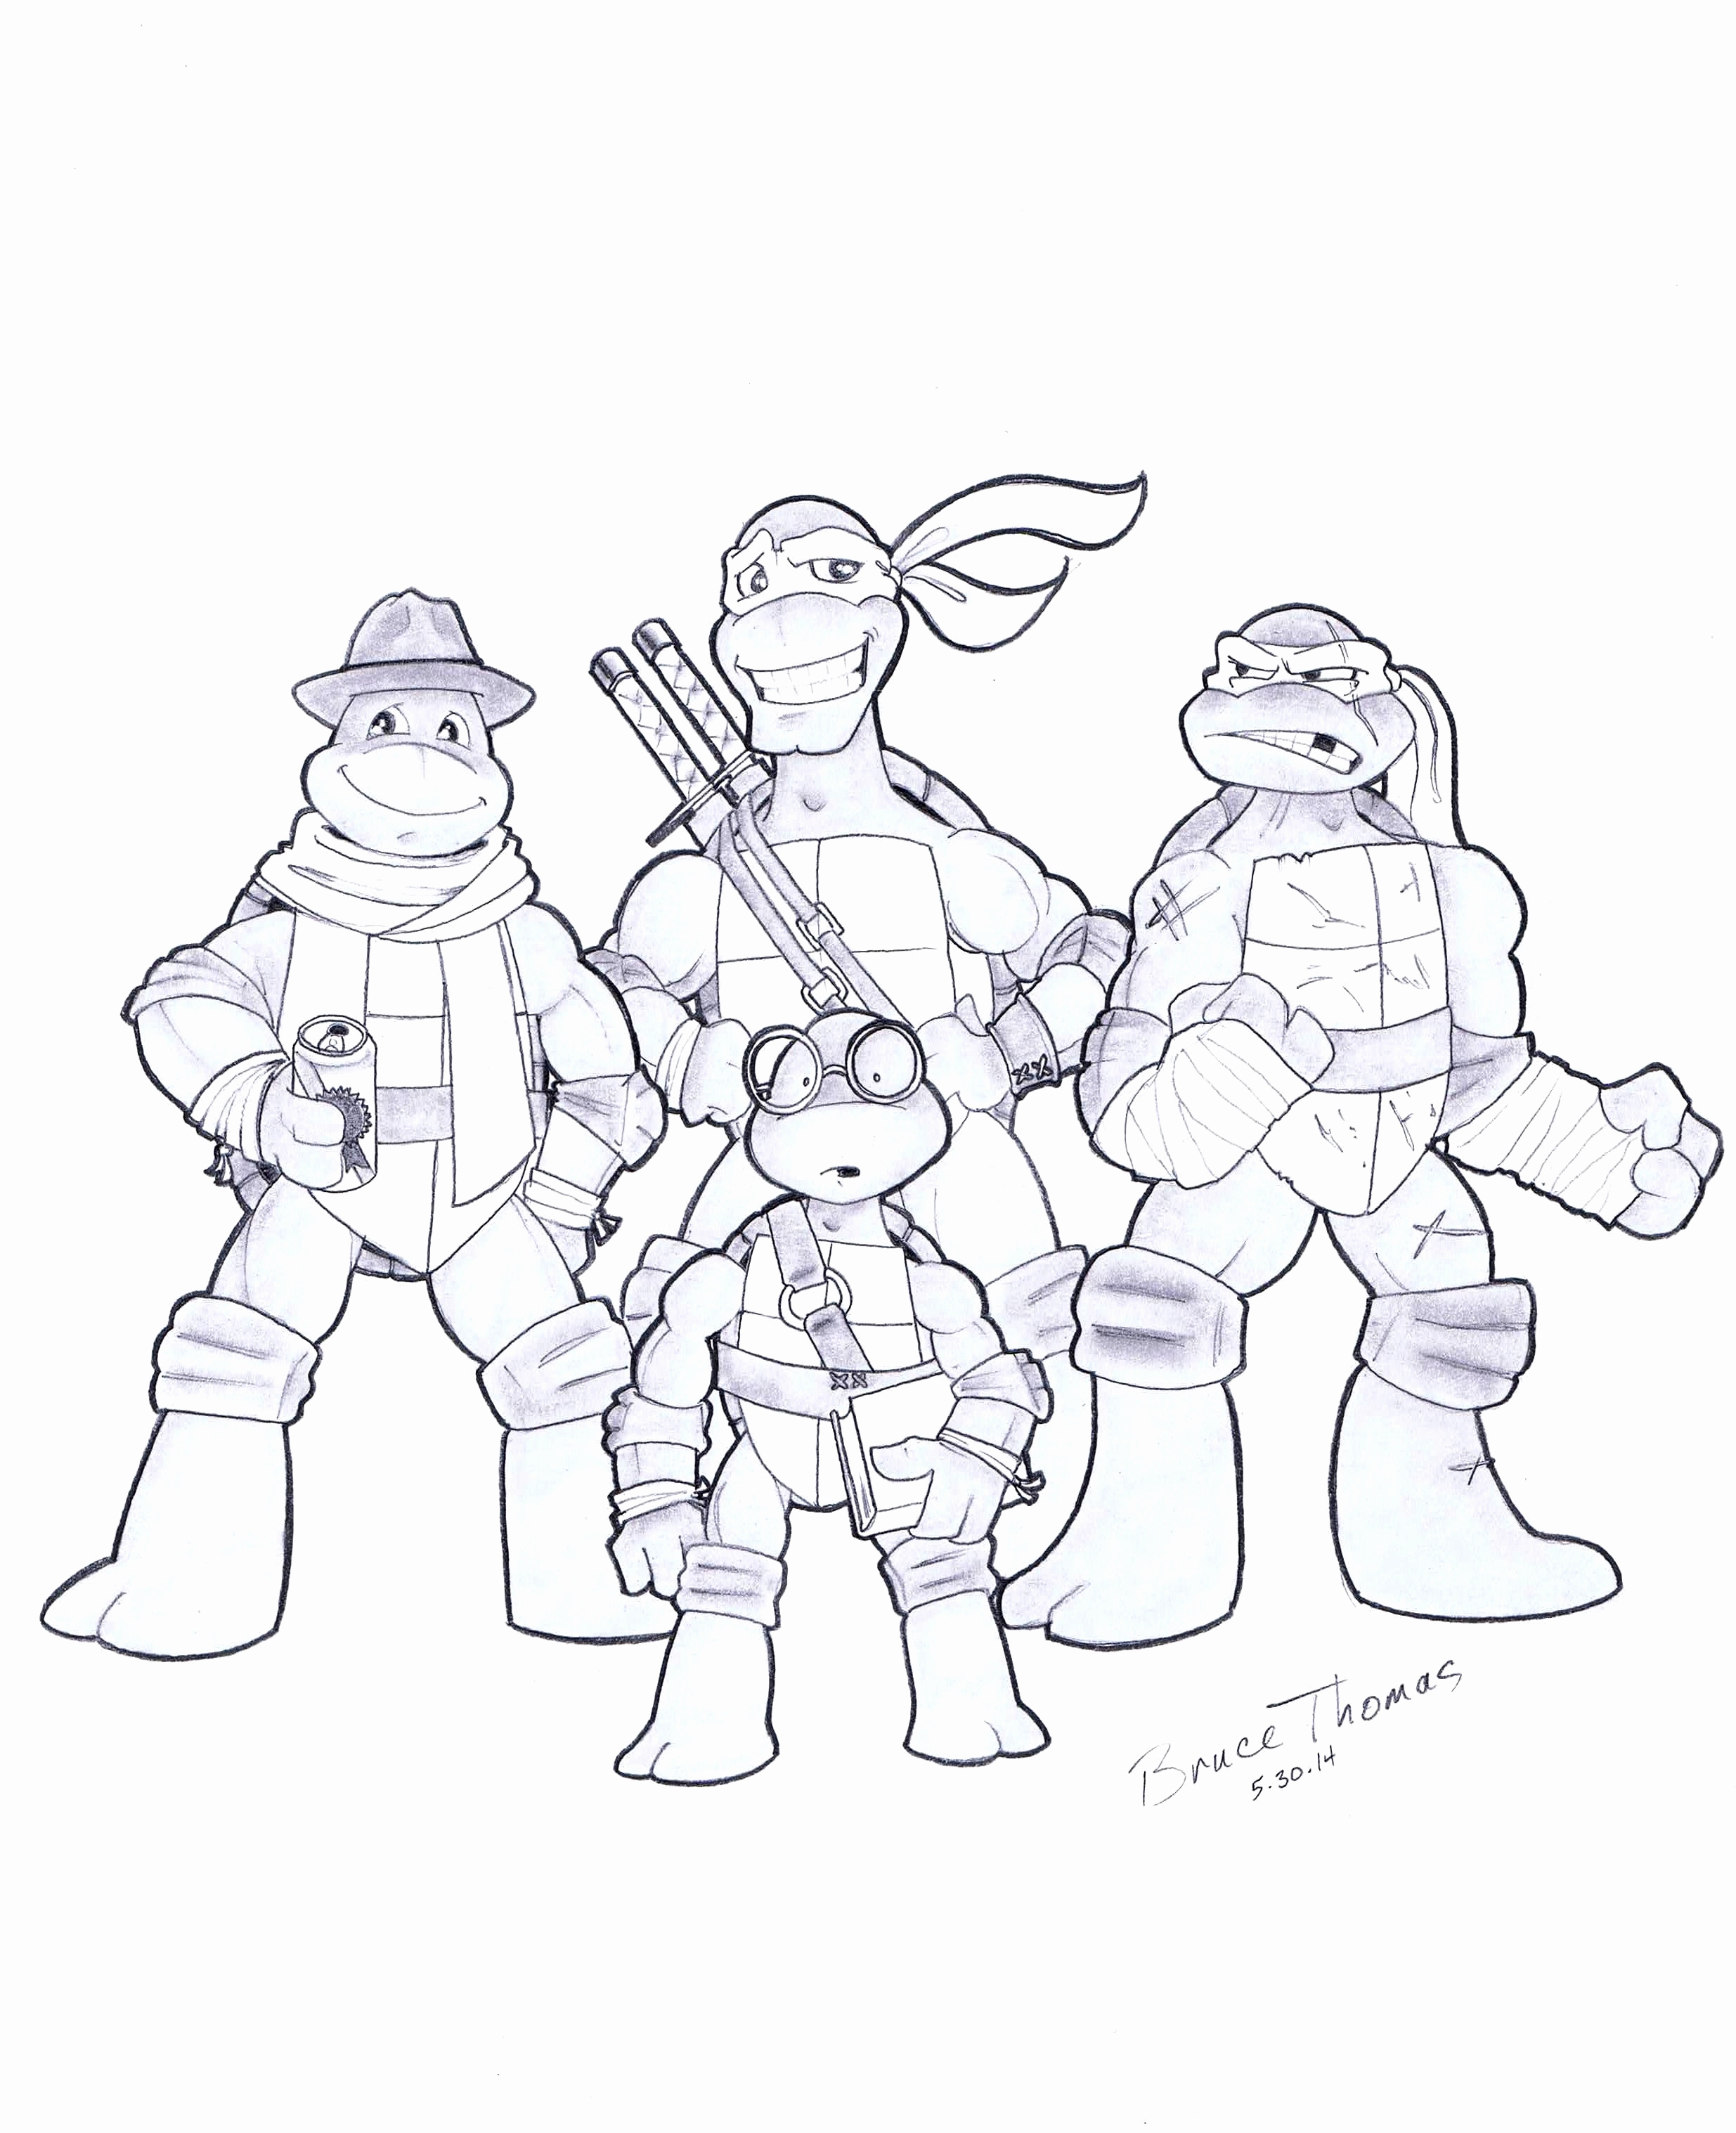 Shredder Coloring Pages At Getdrawings Com Free For Personal Use